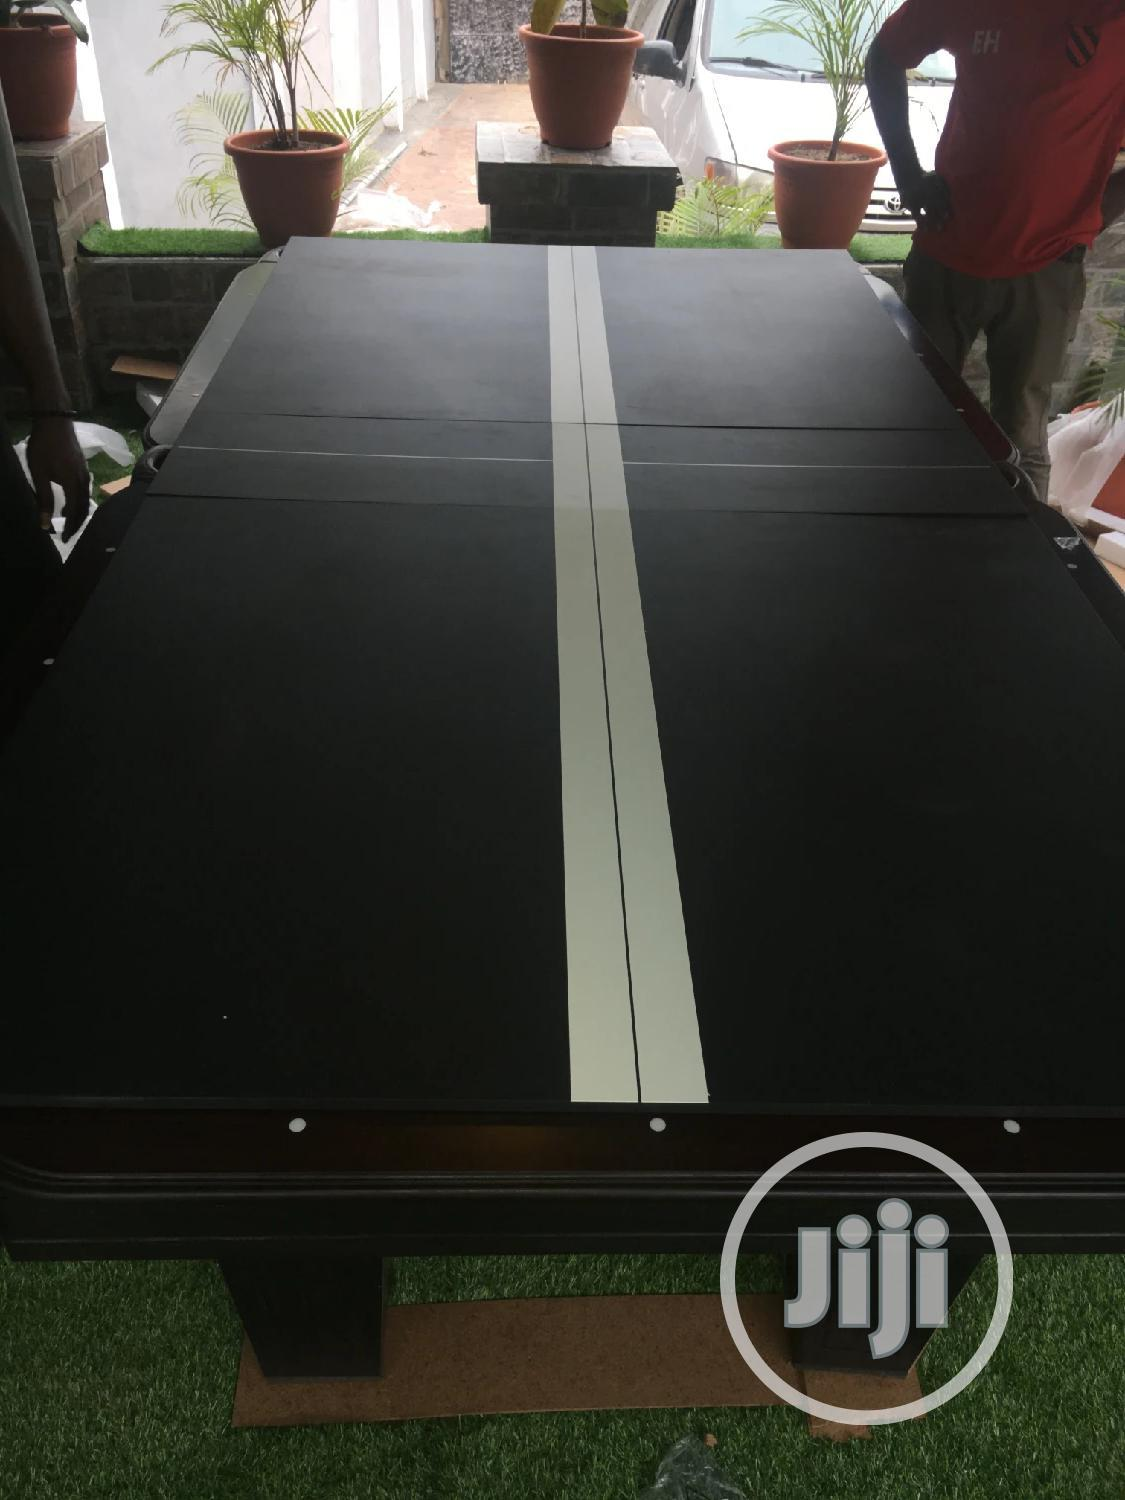 Snooker Board 2 In 1 With Table Tennis. At Promo Price